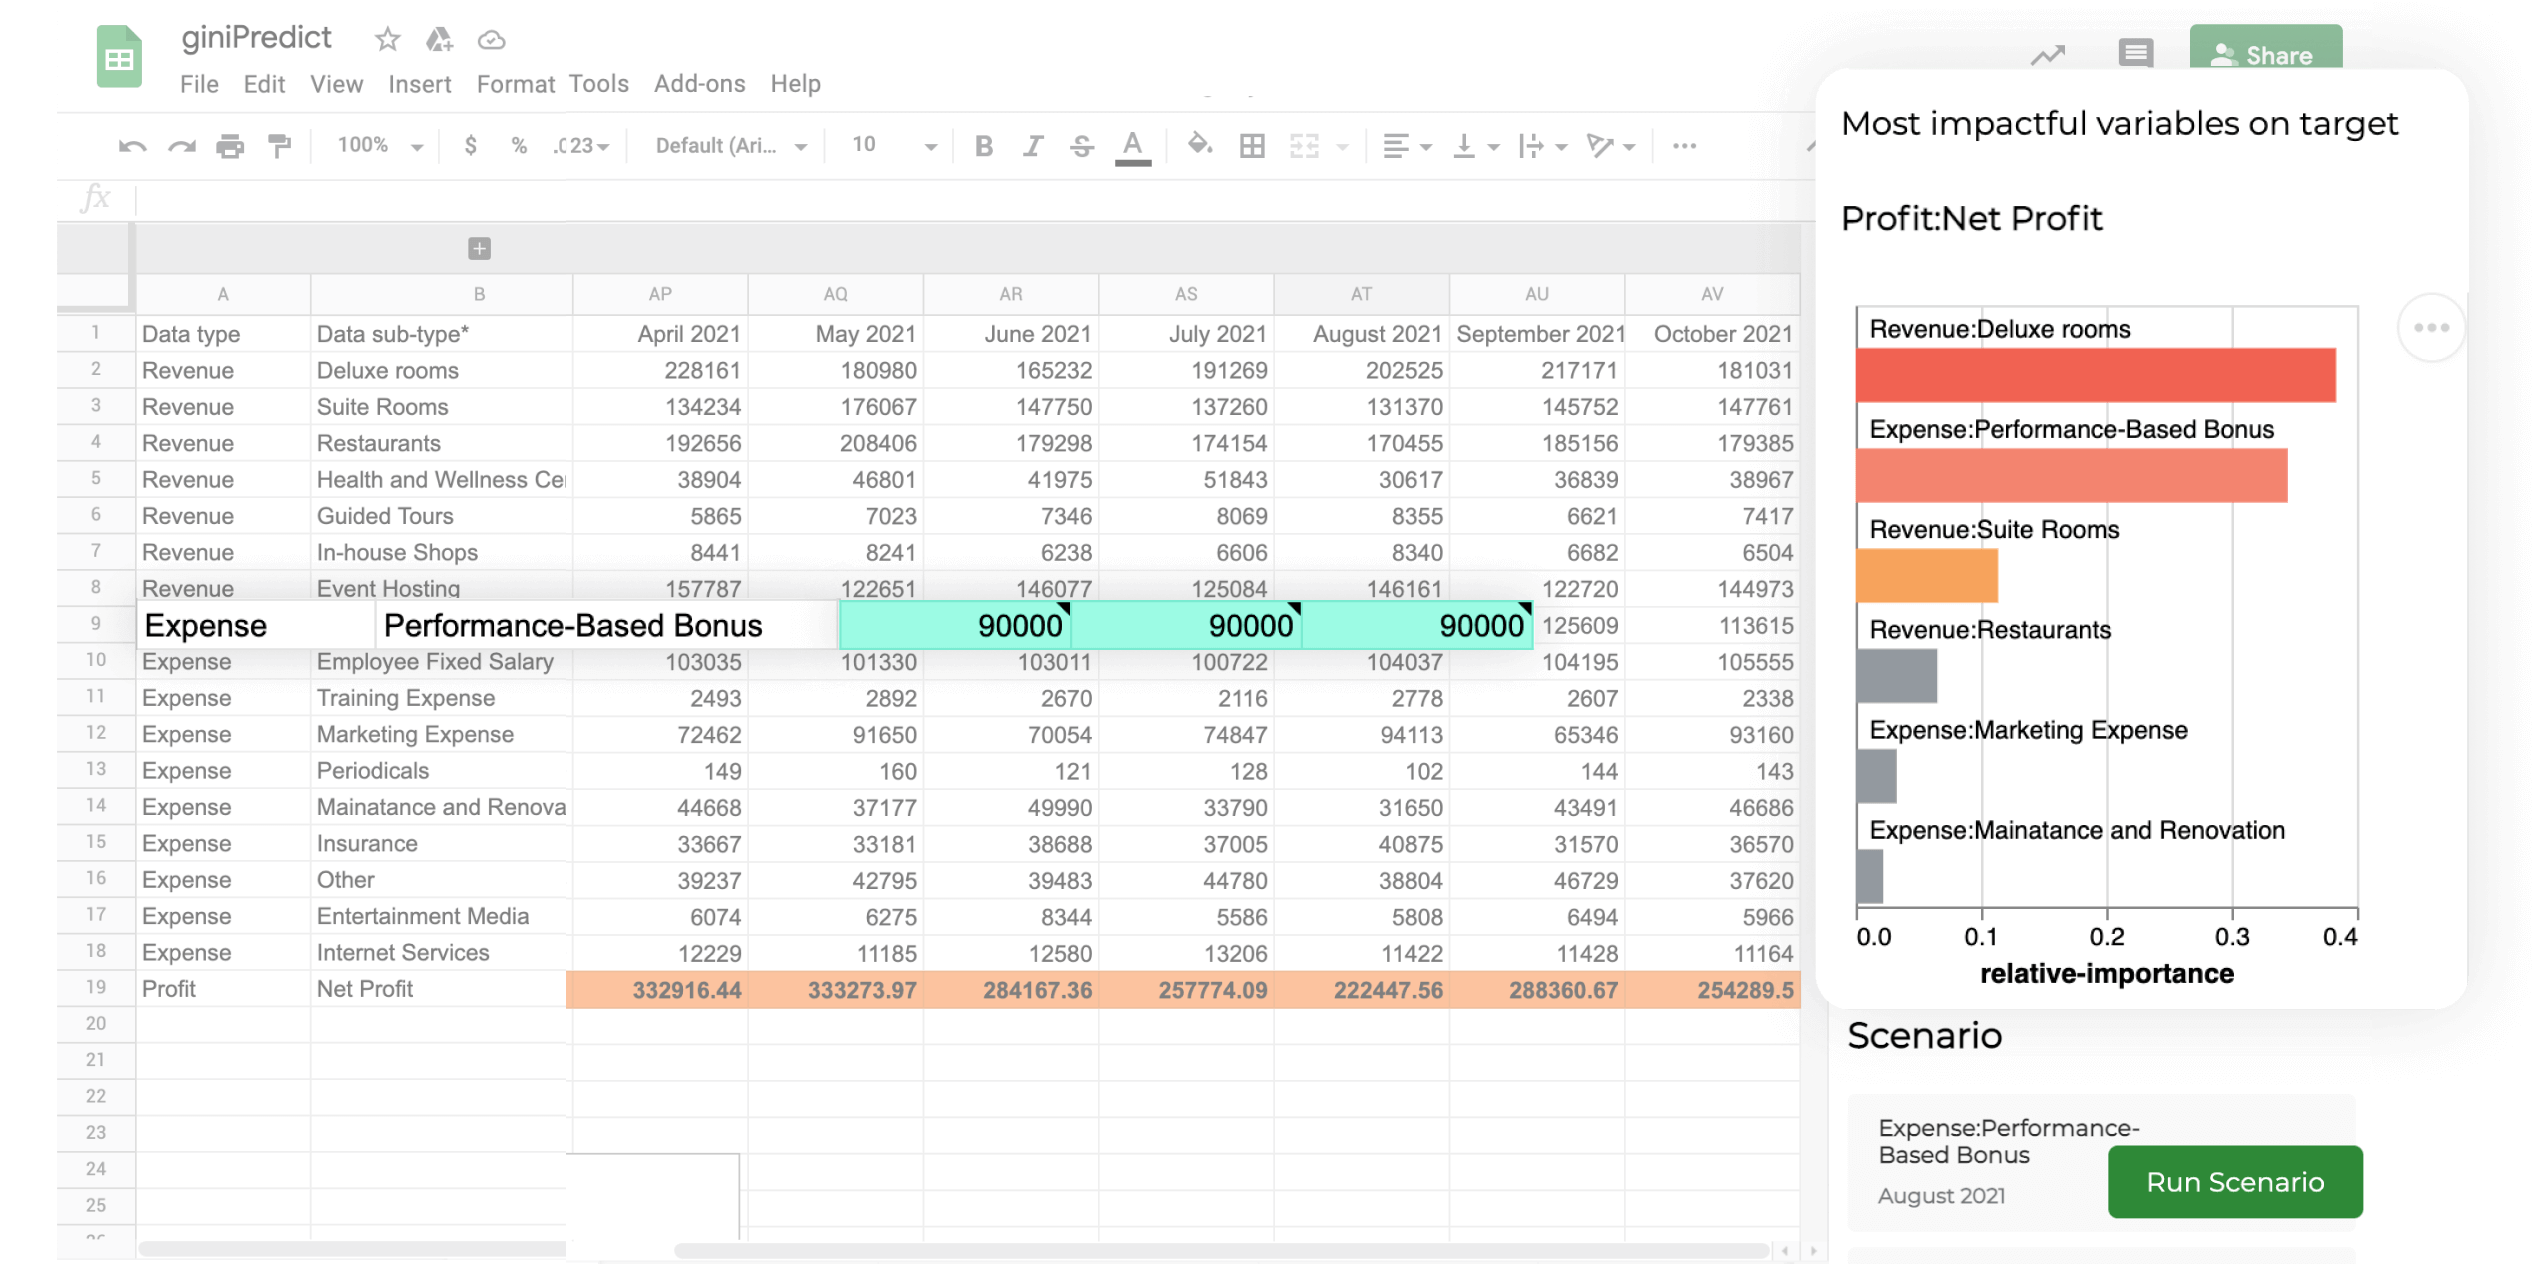 giniPredict Google Sheet add-on | Most impactful variables on net profit